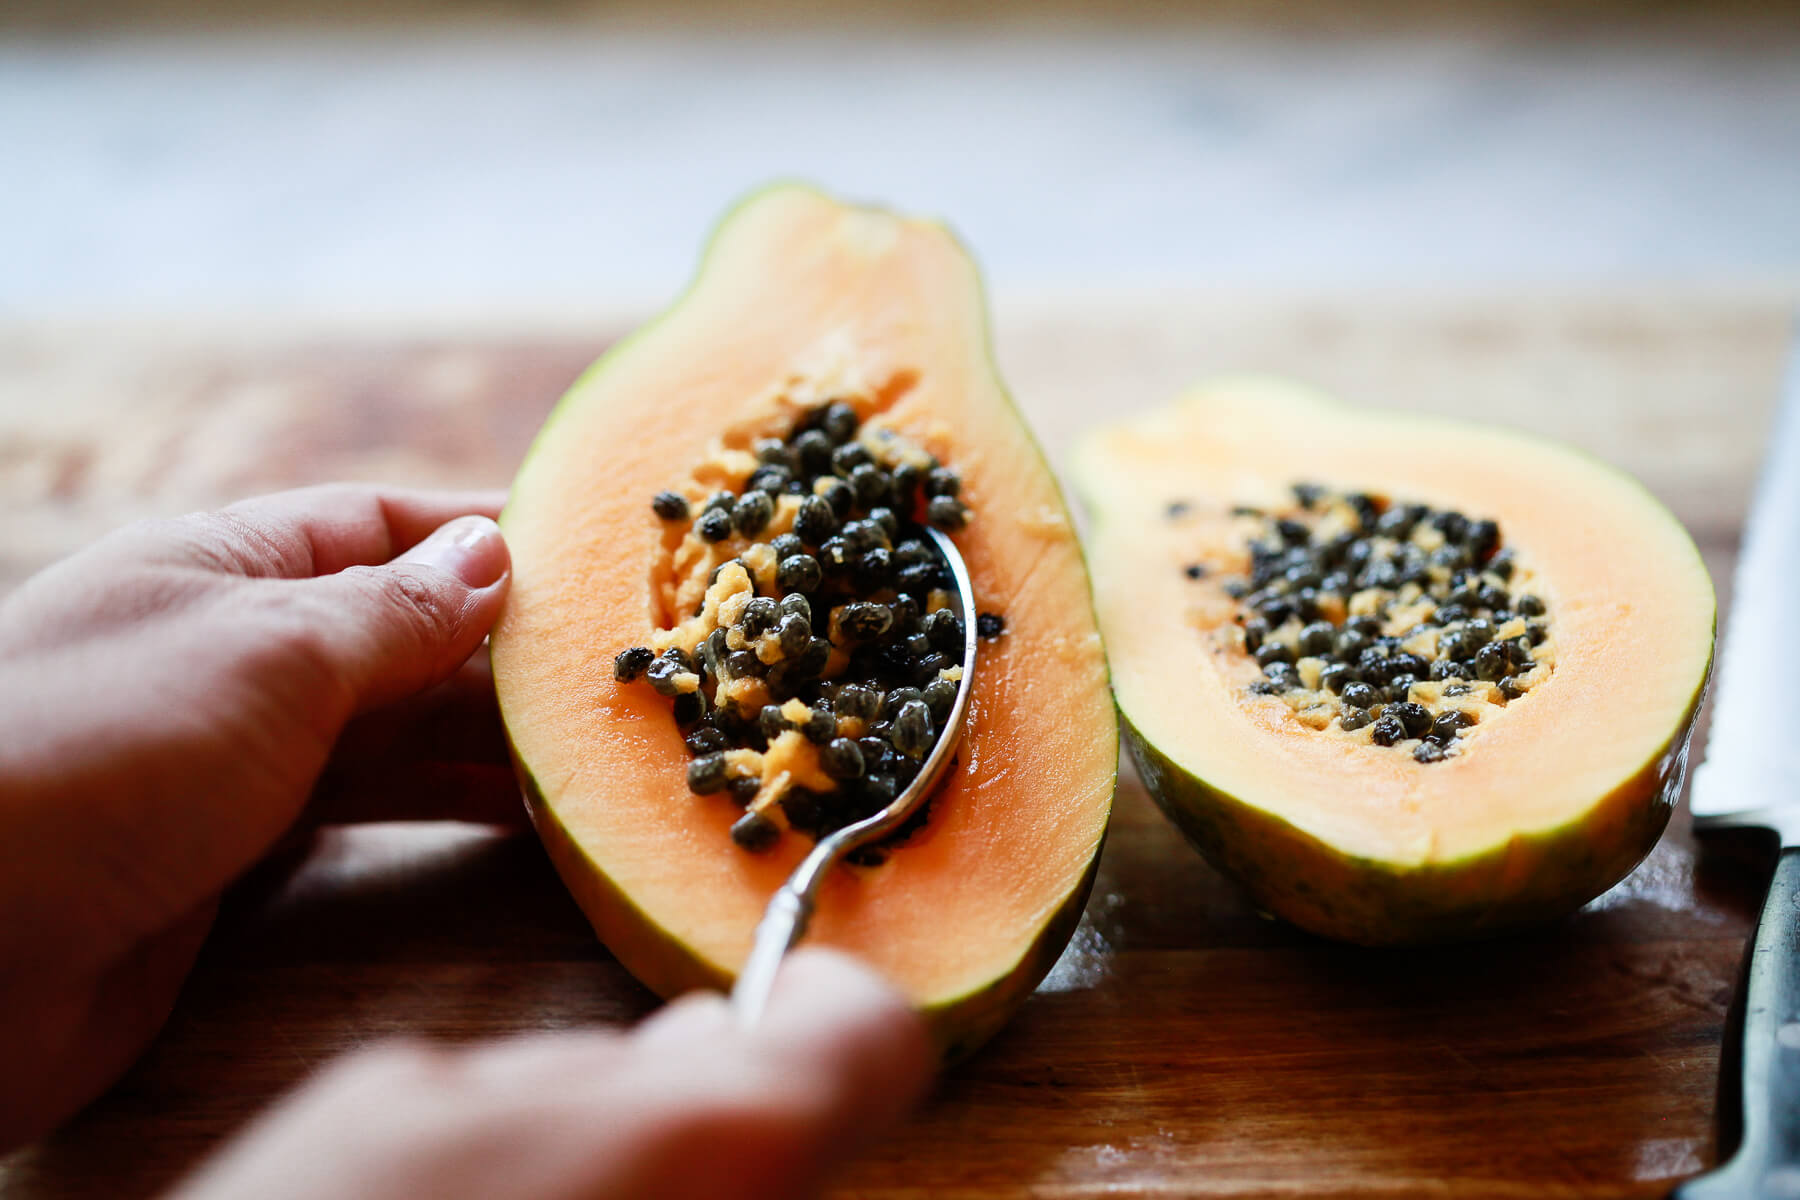 A spoon scoops the seeds out of a Hawaiian papaya.